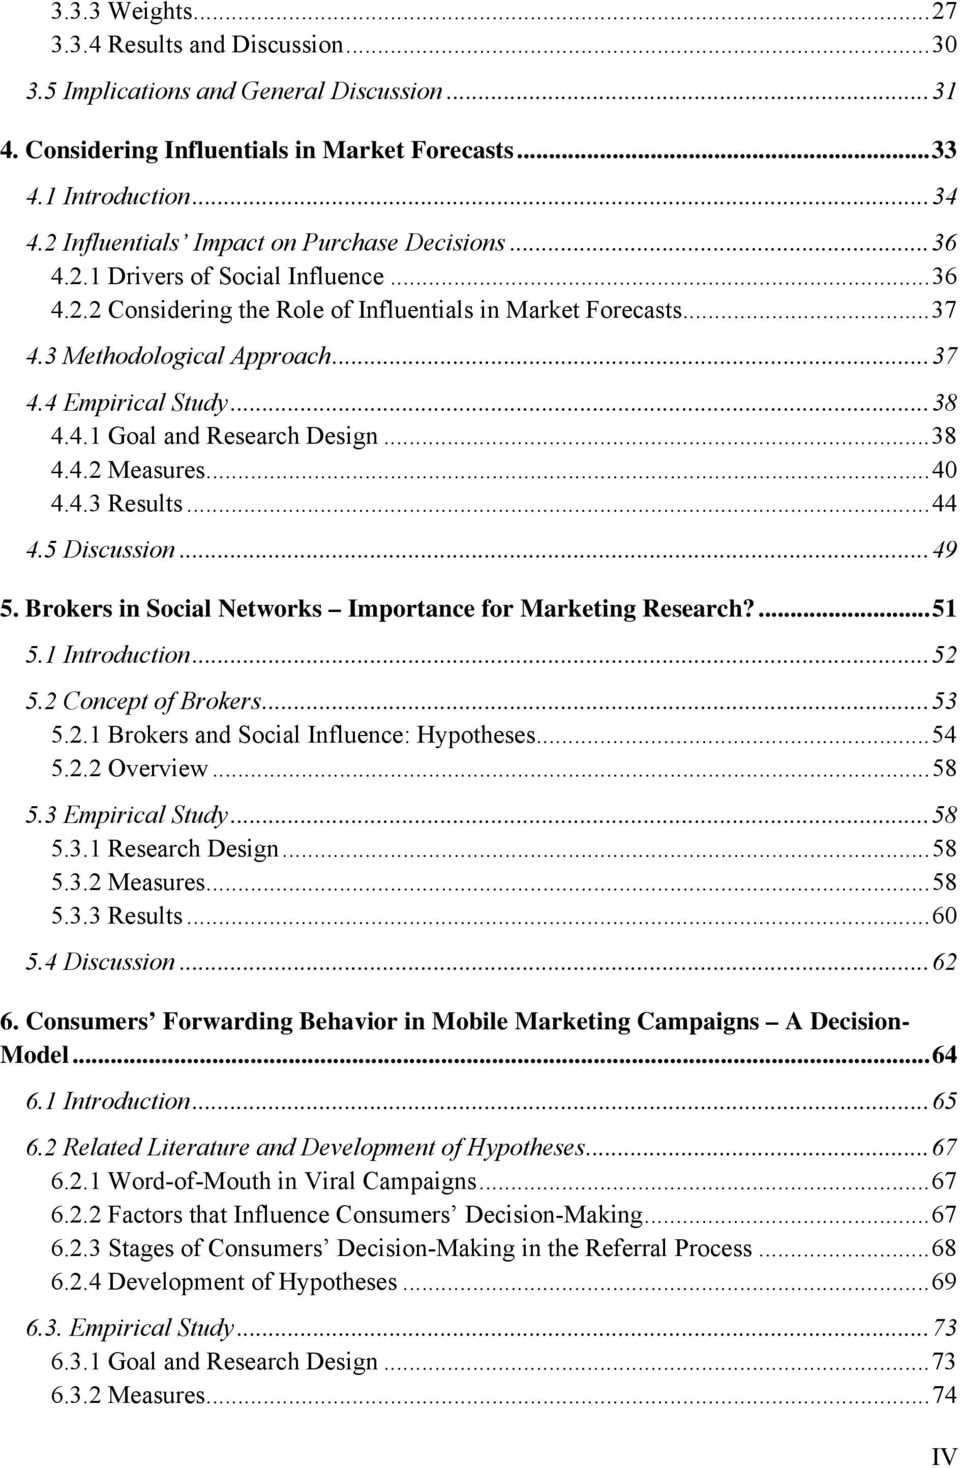 .. 38 4.4.1 Goal and Research Design... 38 4.4.2 Measures... 40 4.4.3 Results... 44 4.5 Discussion... 49 5. Brokers in Social Networks Importance for Marketing Research?... 51 5.1 Introduction... 52 5.